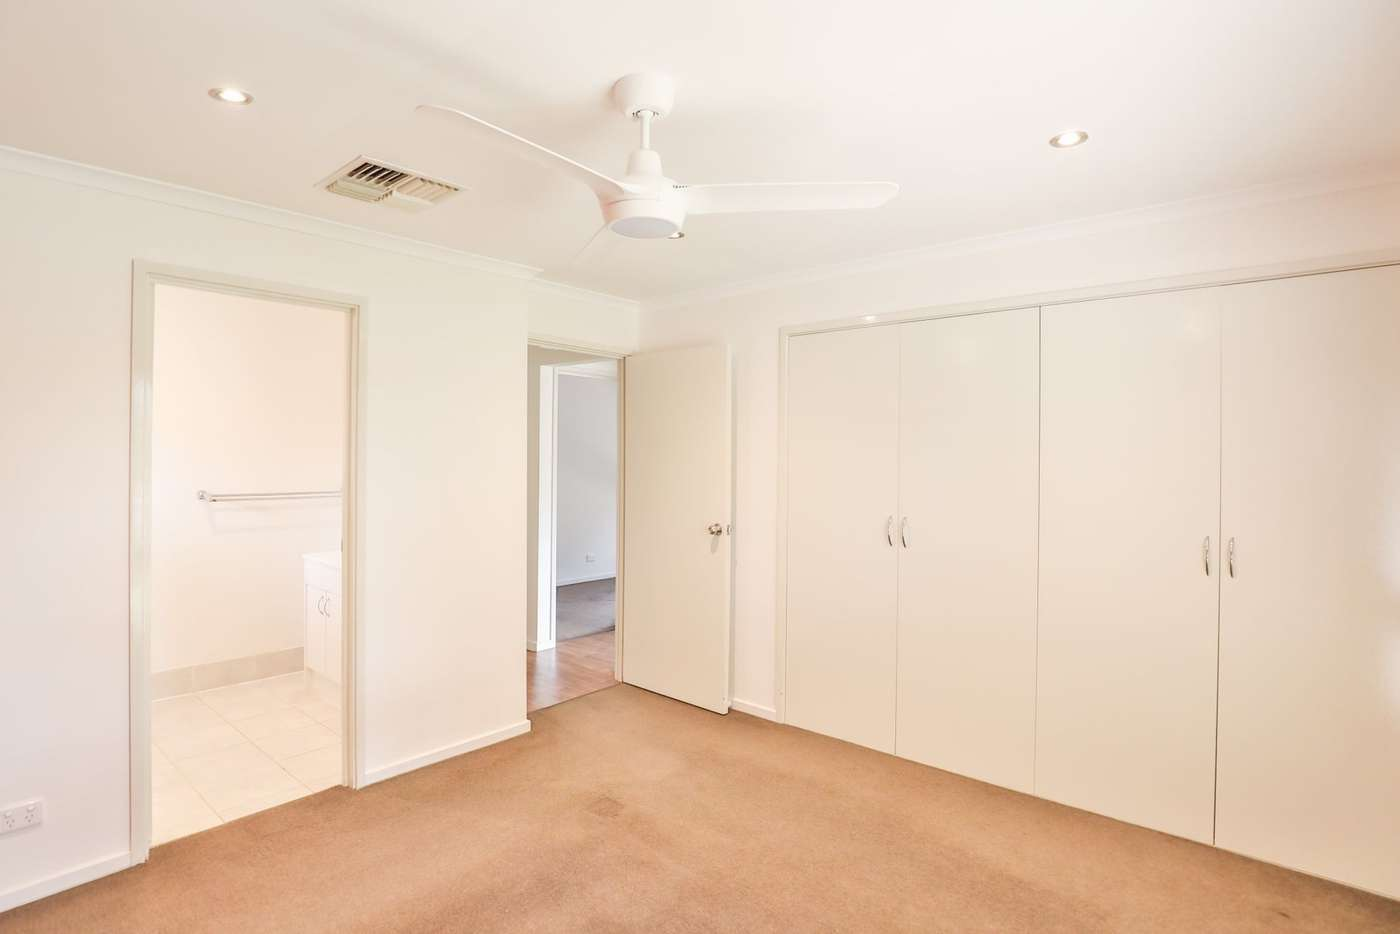 Seventh view of Homely house listing, 2 Baker Court, Mildura VIC 3500